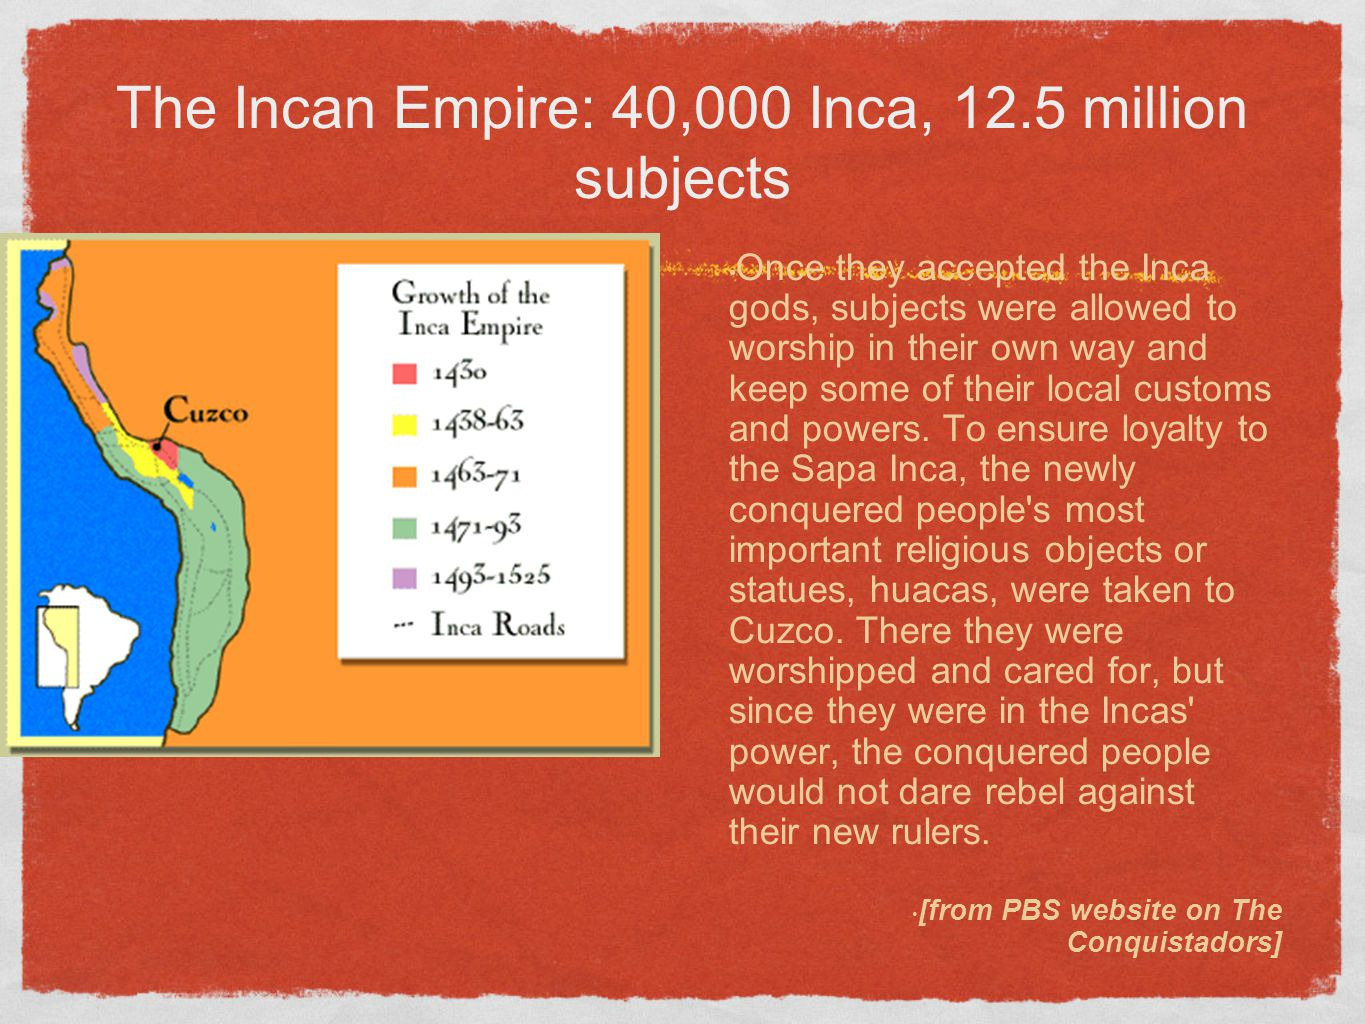 The Incan Empire: 40,000 Inca, 12.5 million subjects